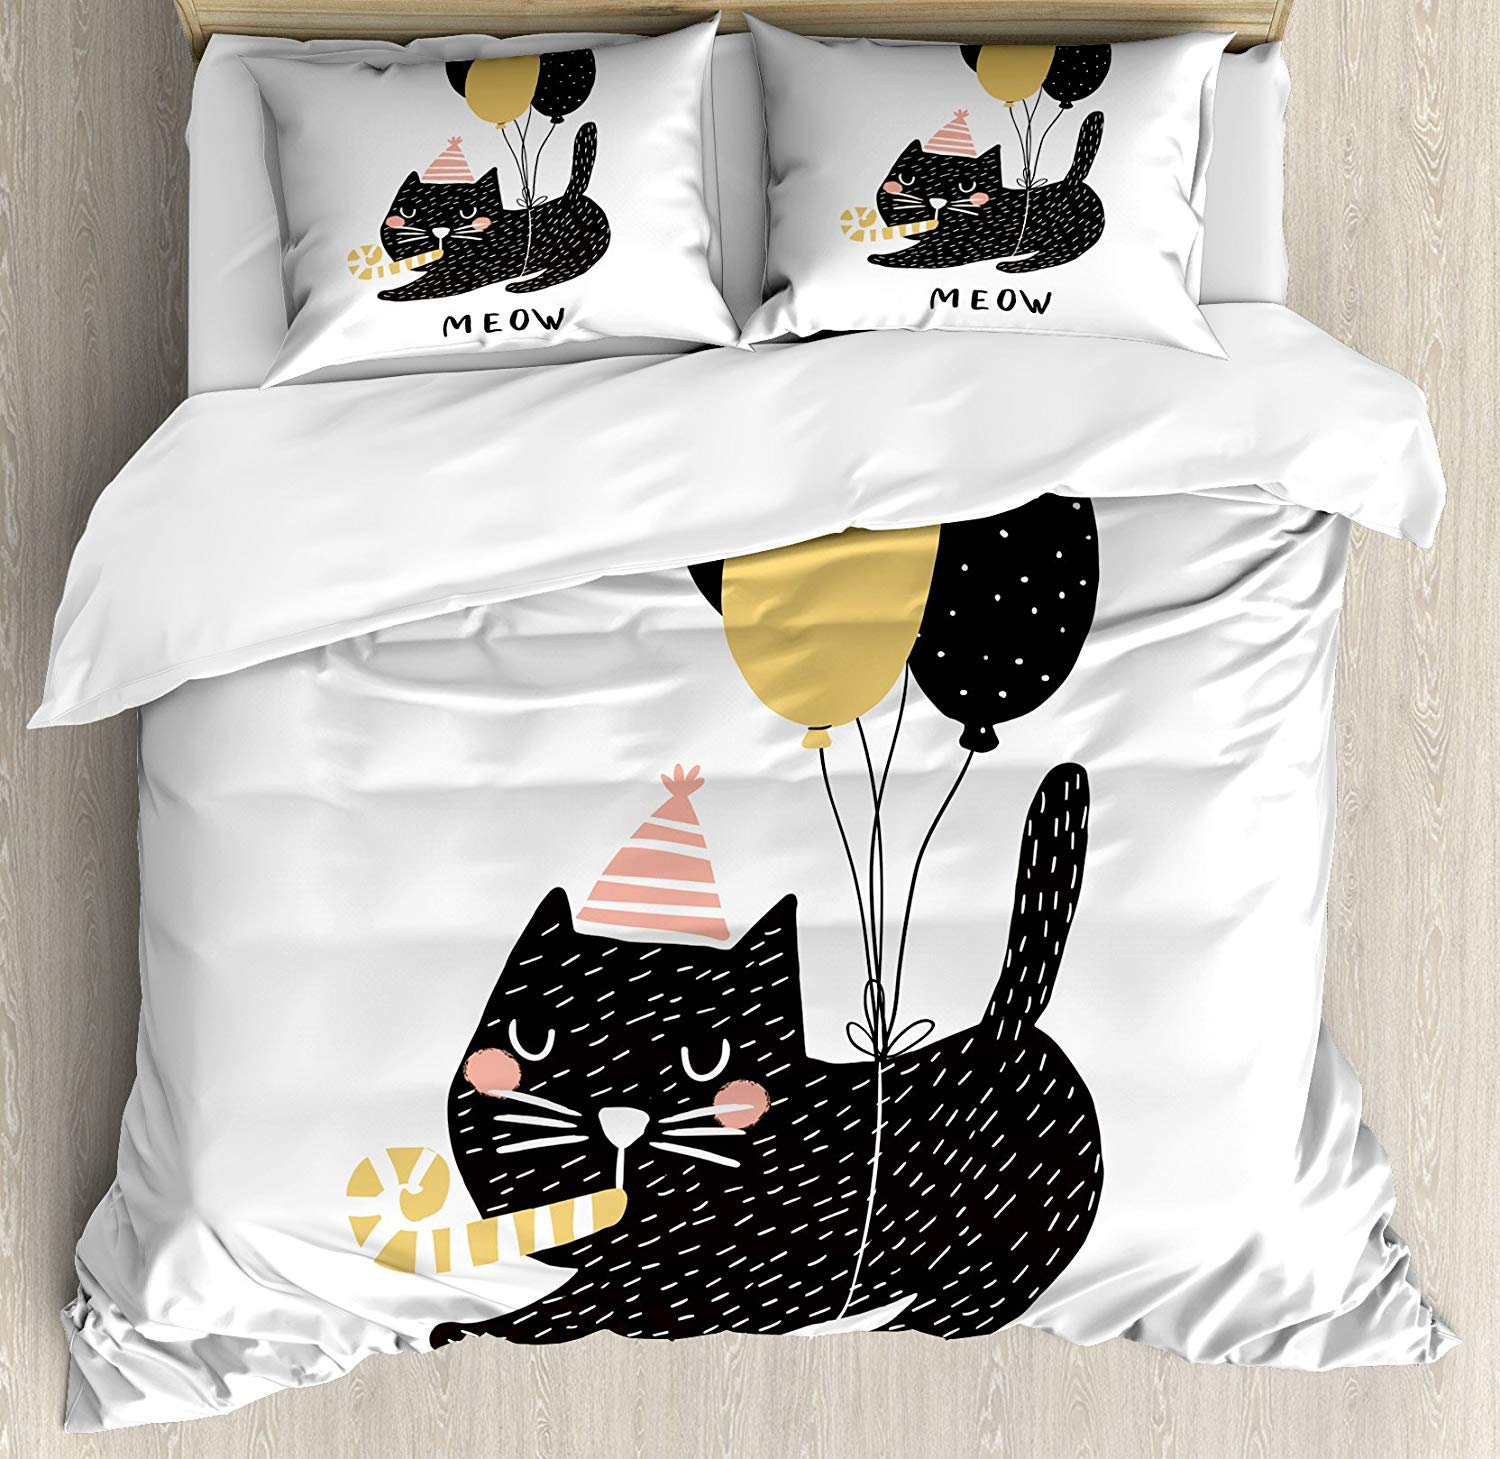 B05 King B05 King Lncropo Cat King Size Duvet Cover Set, Birthday Party Feline with Balloon and Hat Hand Drawn Festive House Pet, Decorative 3 Piece Bedding Set with 2 Pillow Shams, Pale Pink Pale Brown Black